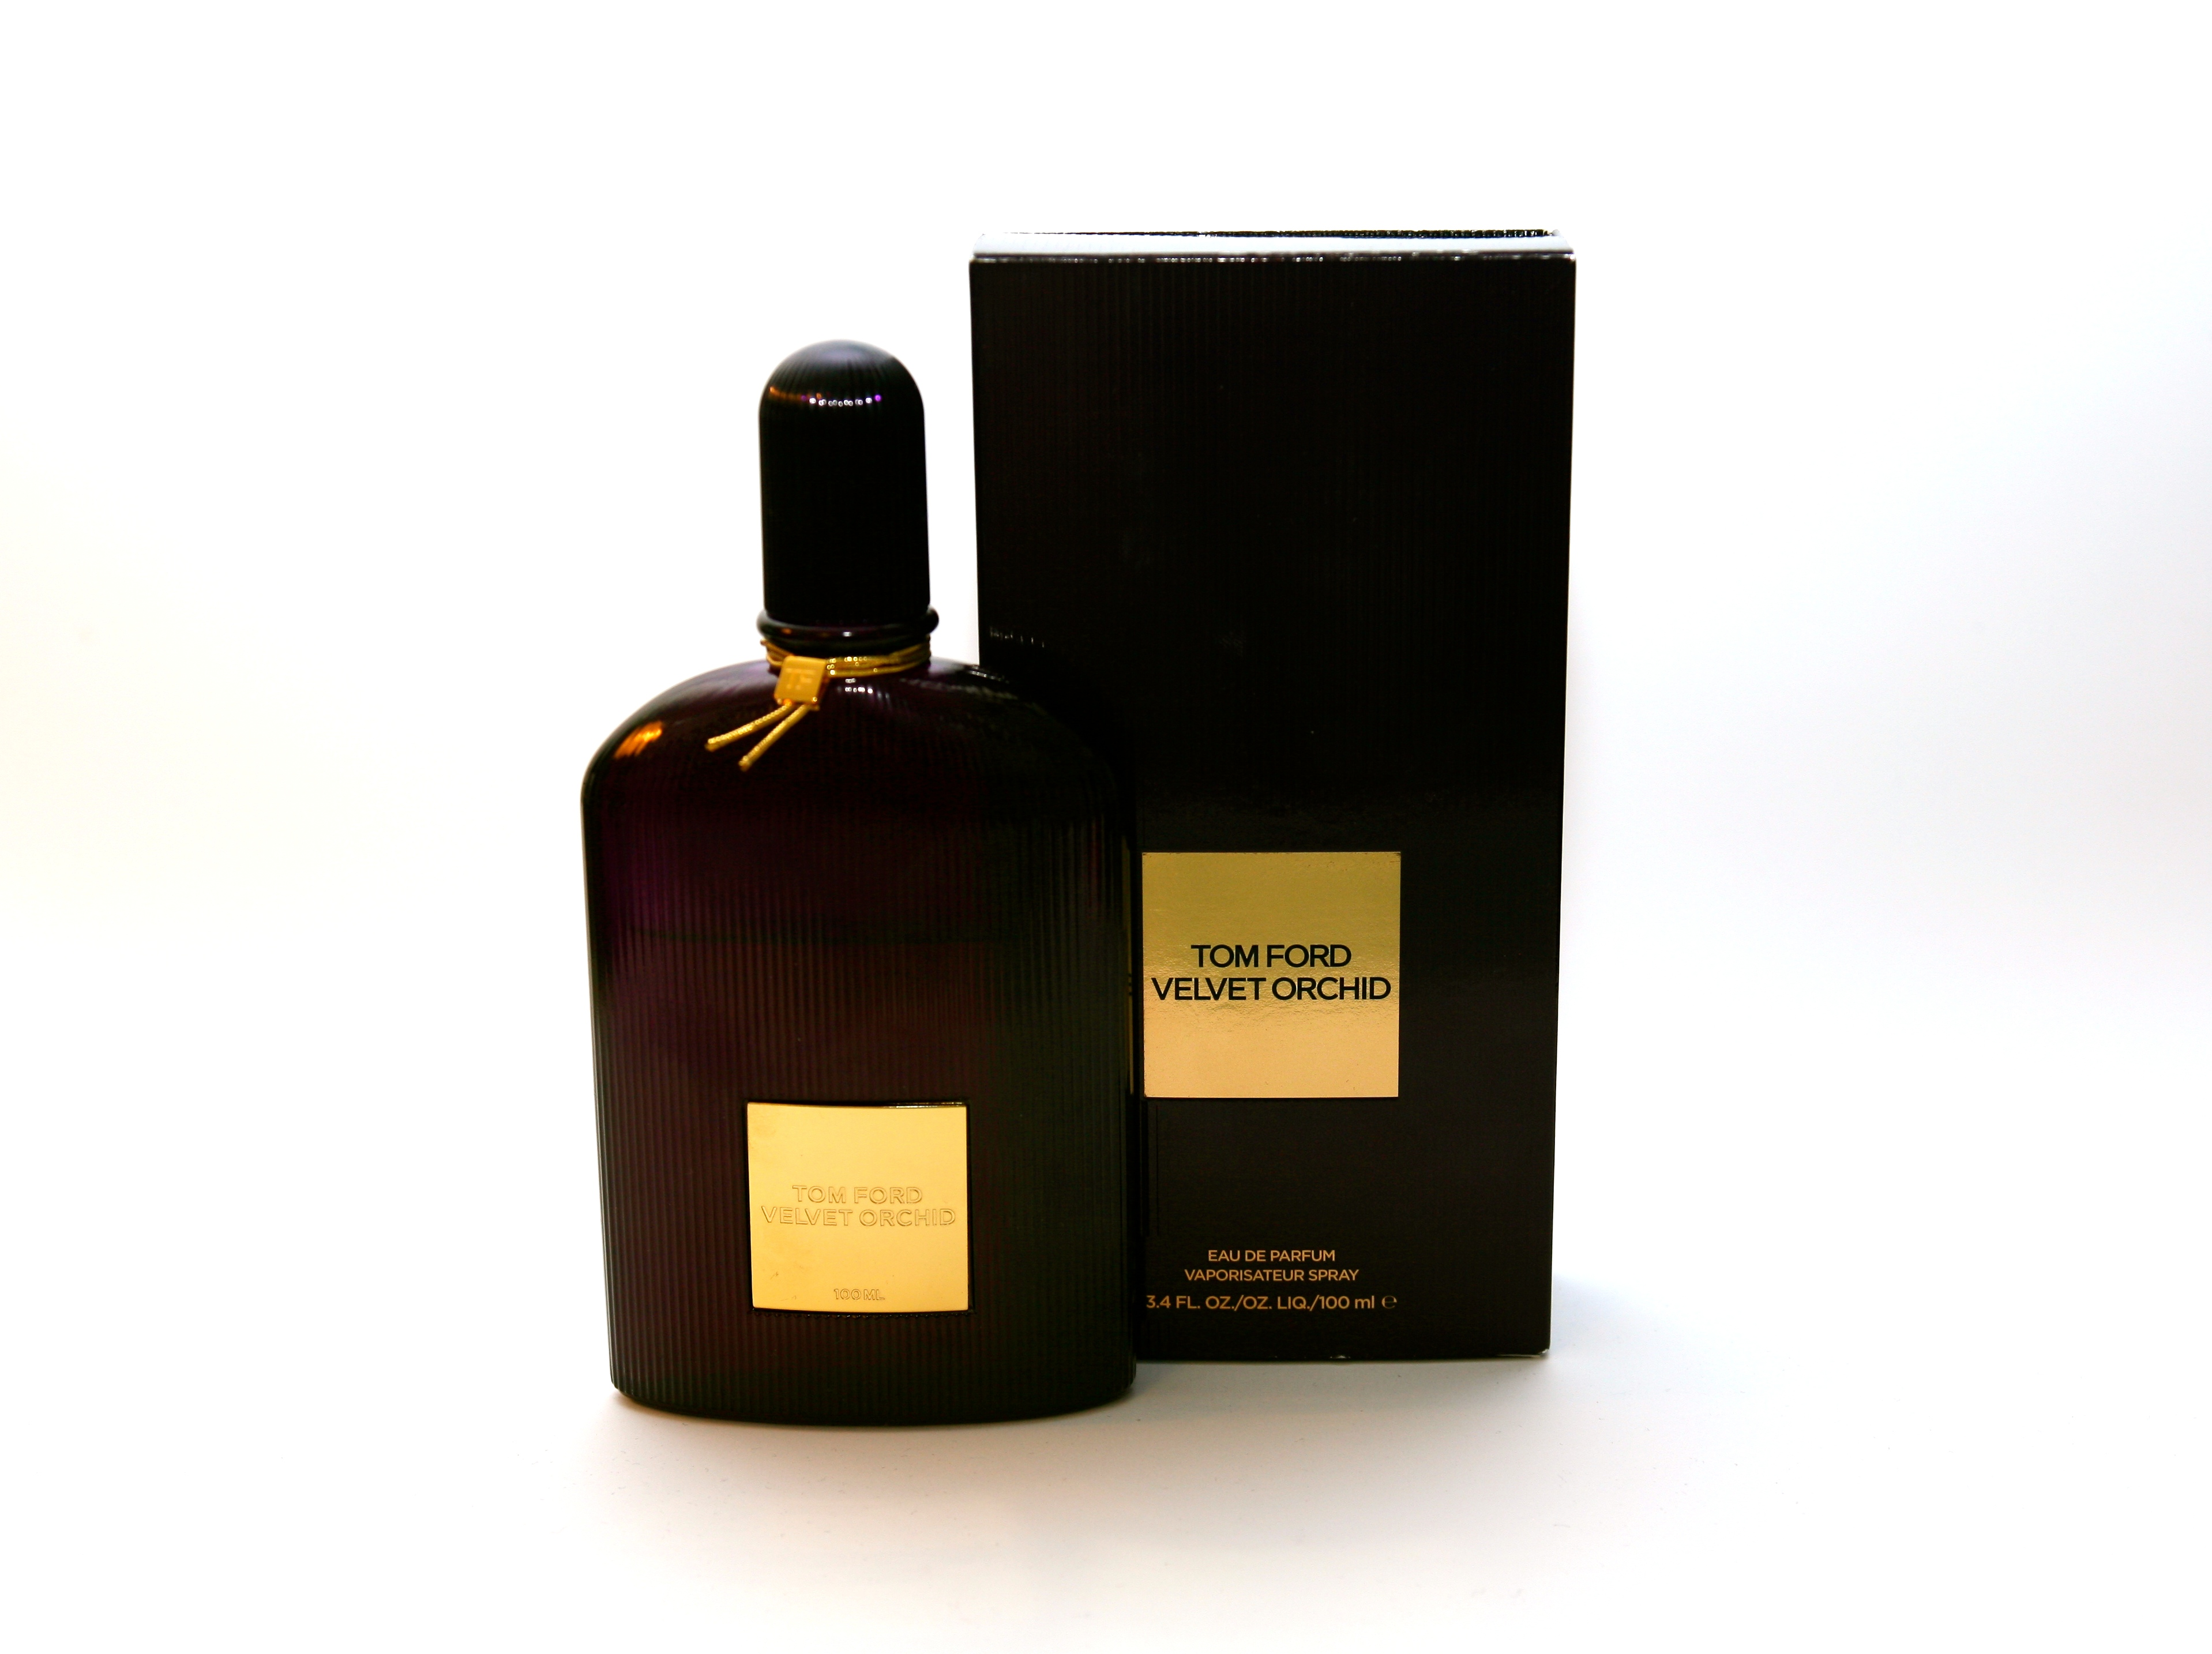 tom ford velvet orchid eau de parfum 100 ml tom ford. Black Bedroom Furniture Sets. Home Design Ideas